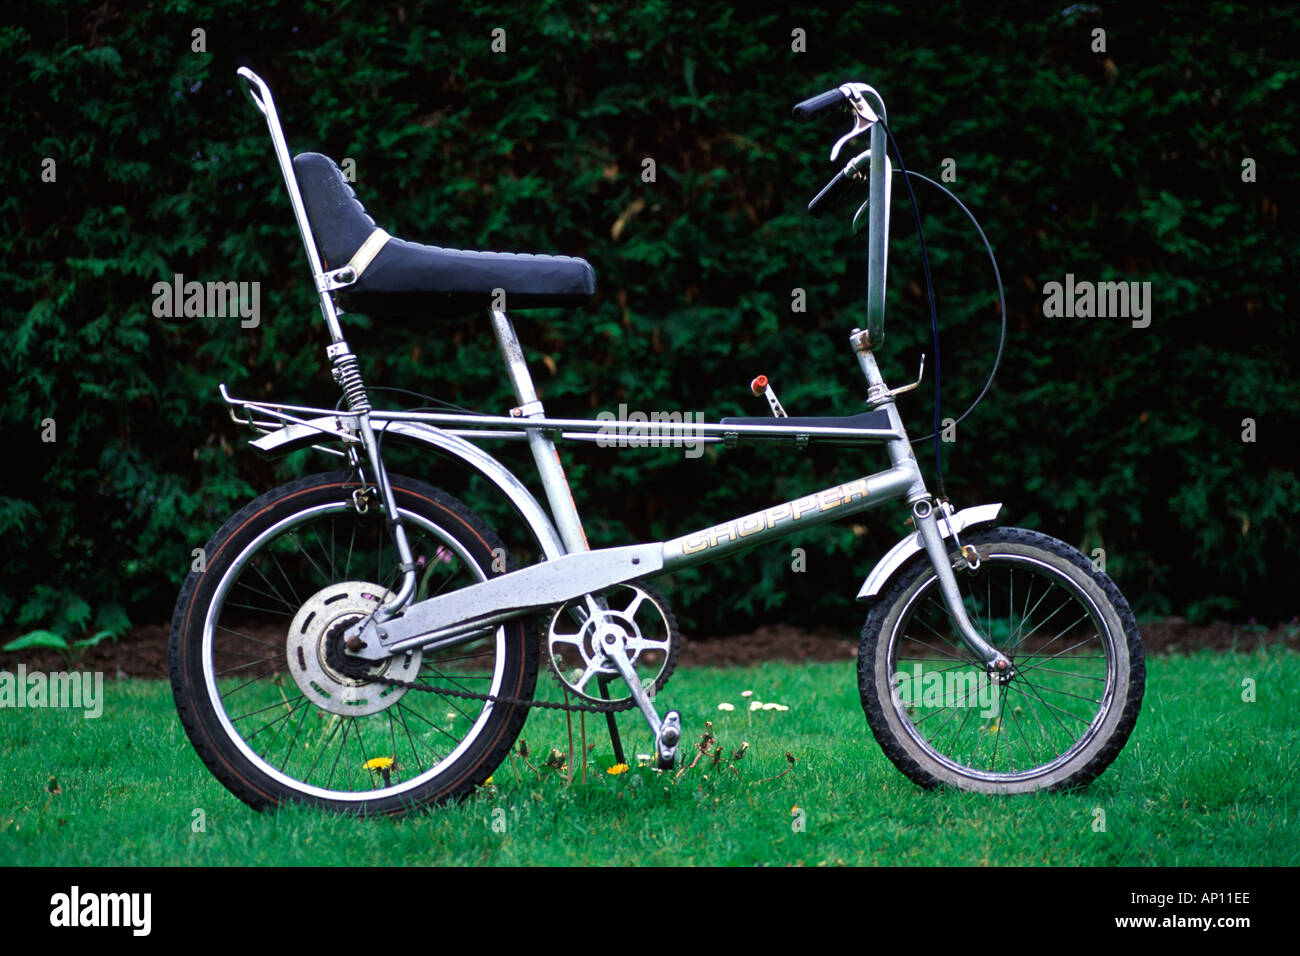 The Raleigh Cycle Stock Photos & The Raleigh Cycle Stock Images - Alamy